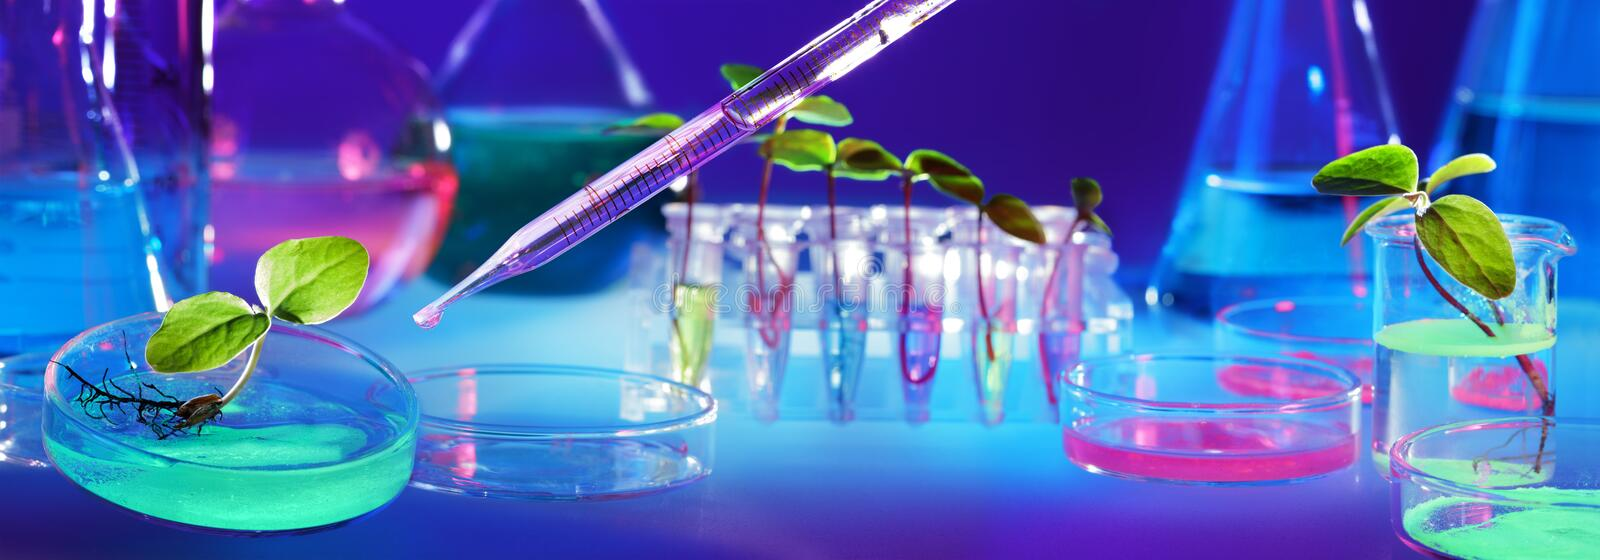 Biotechnology And GMO - Plants In Test Tubes stock images